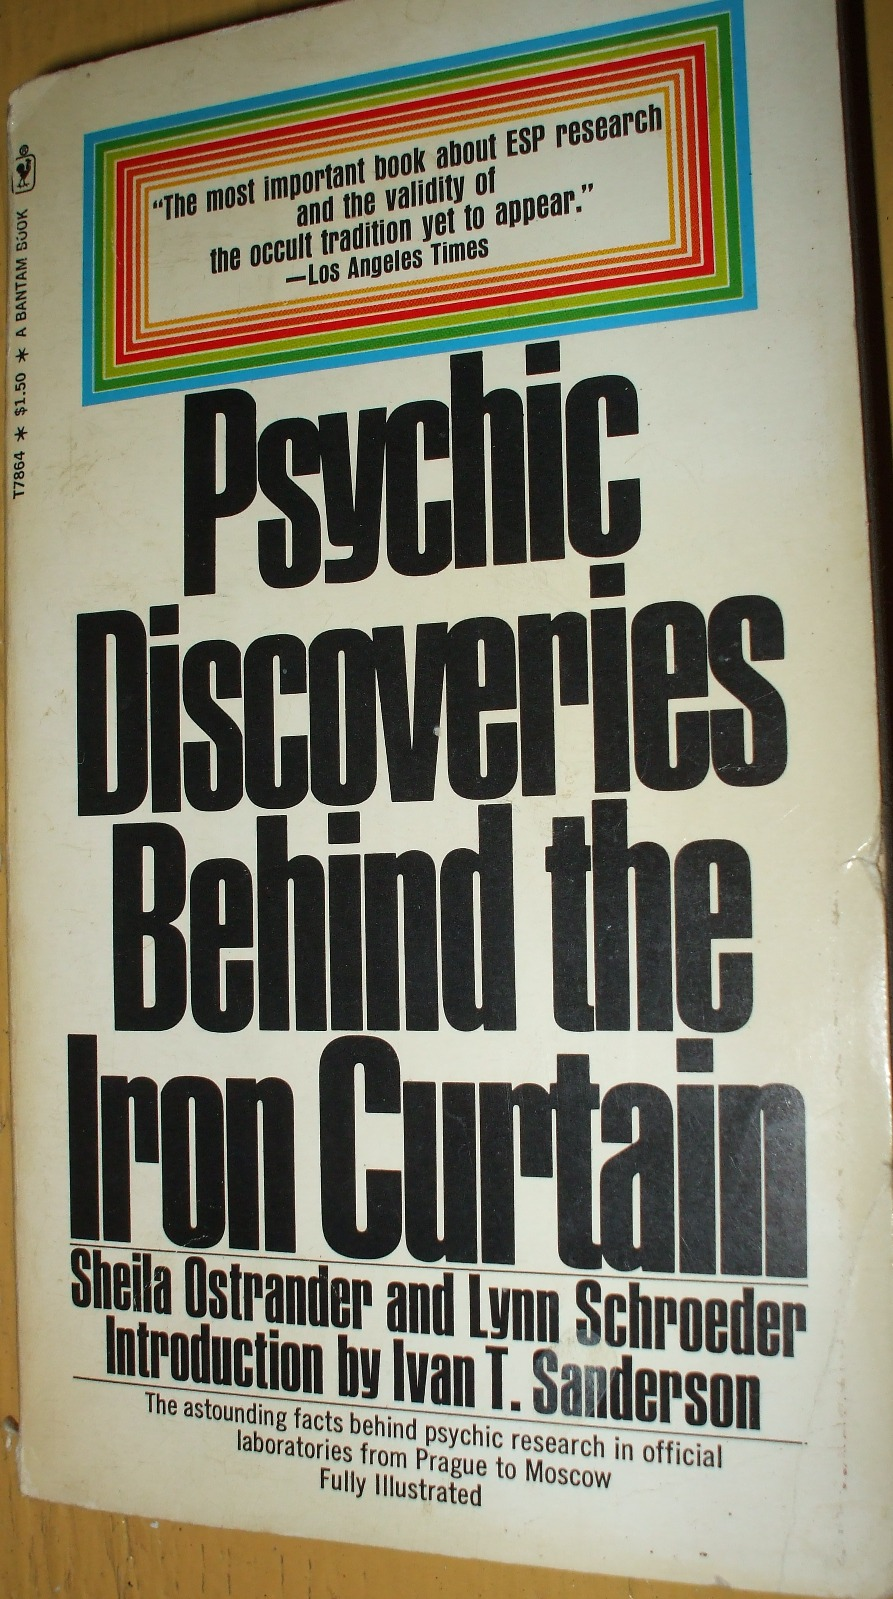 Curtain behind the curtain book - Psychic Discoveries Behind The Iron Curtain Ostrander And Schroeder 1970 Interesting That The L A Times Said This Book